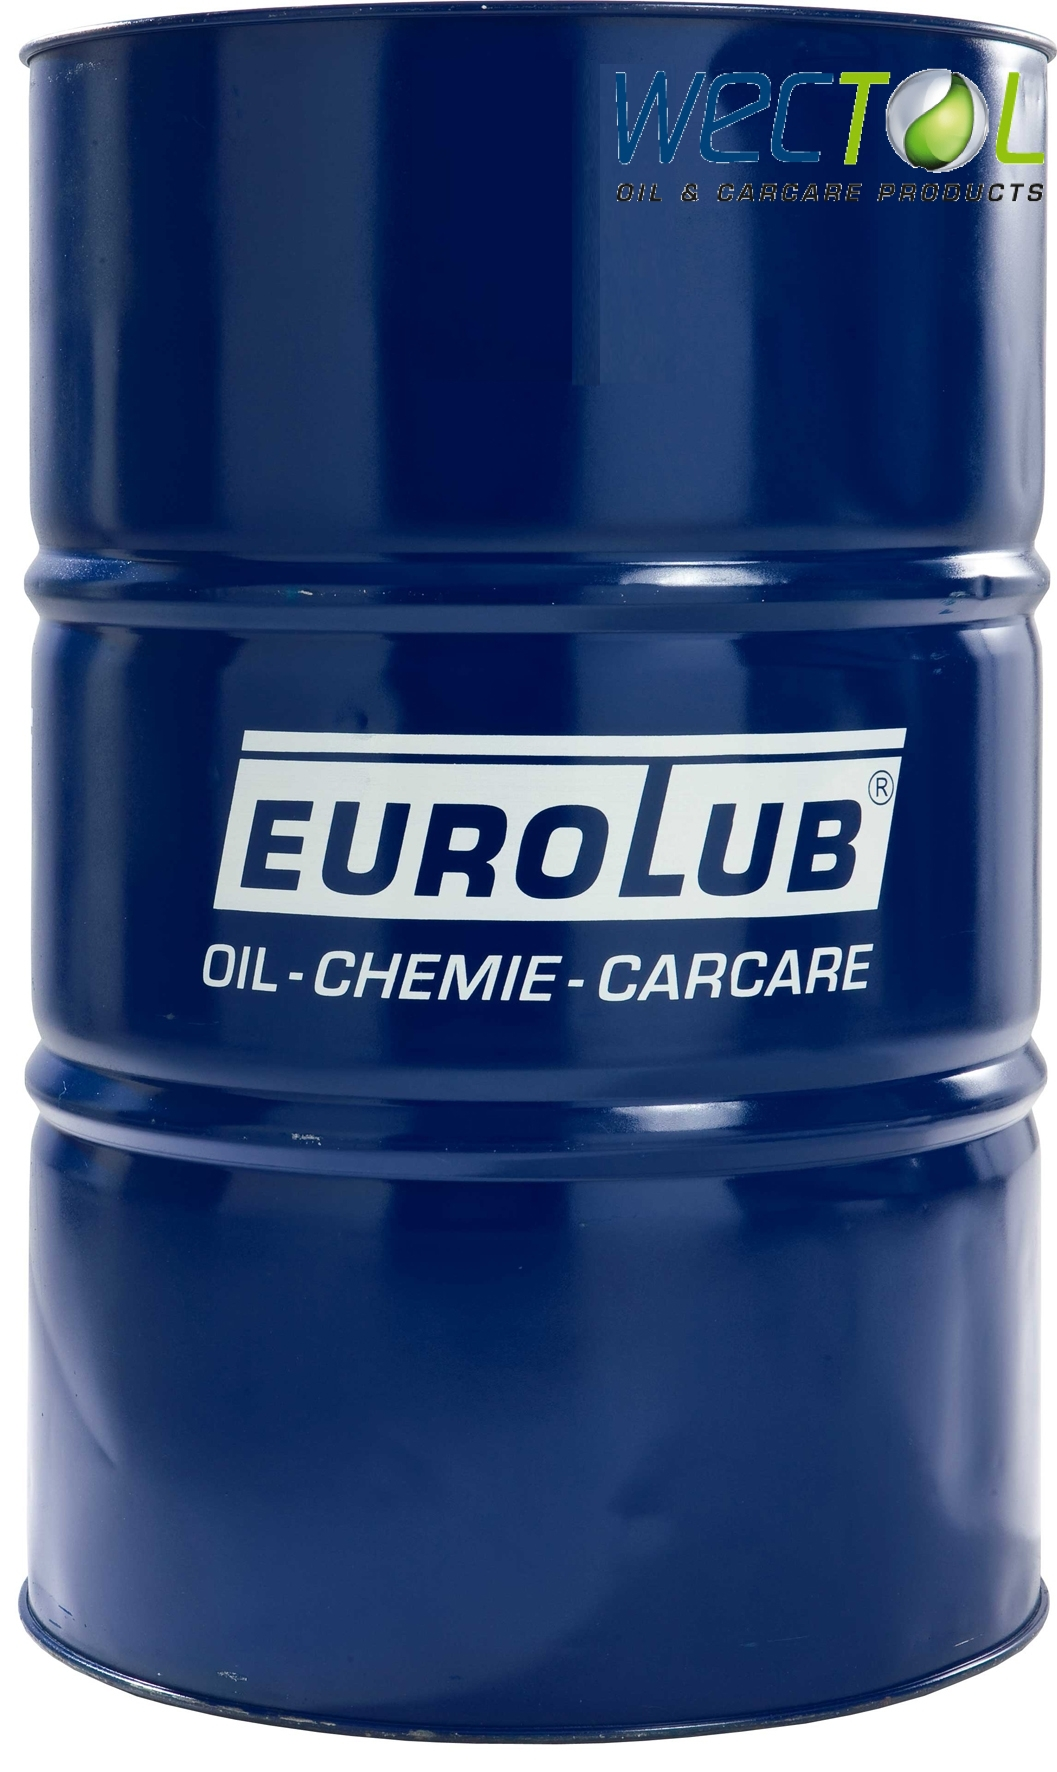 eurolub wiv eco 5w 30 motor l 5w30 vw bmw mb longlife 208 liter ebay. Black Bedroom Furniture Sets. Home Design Ideas